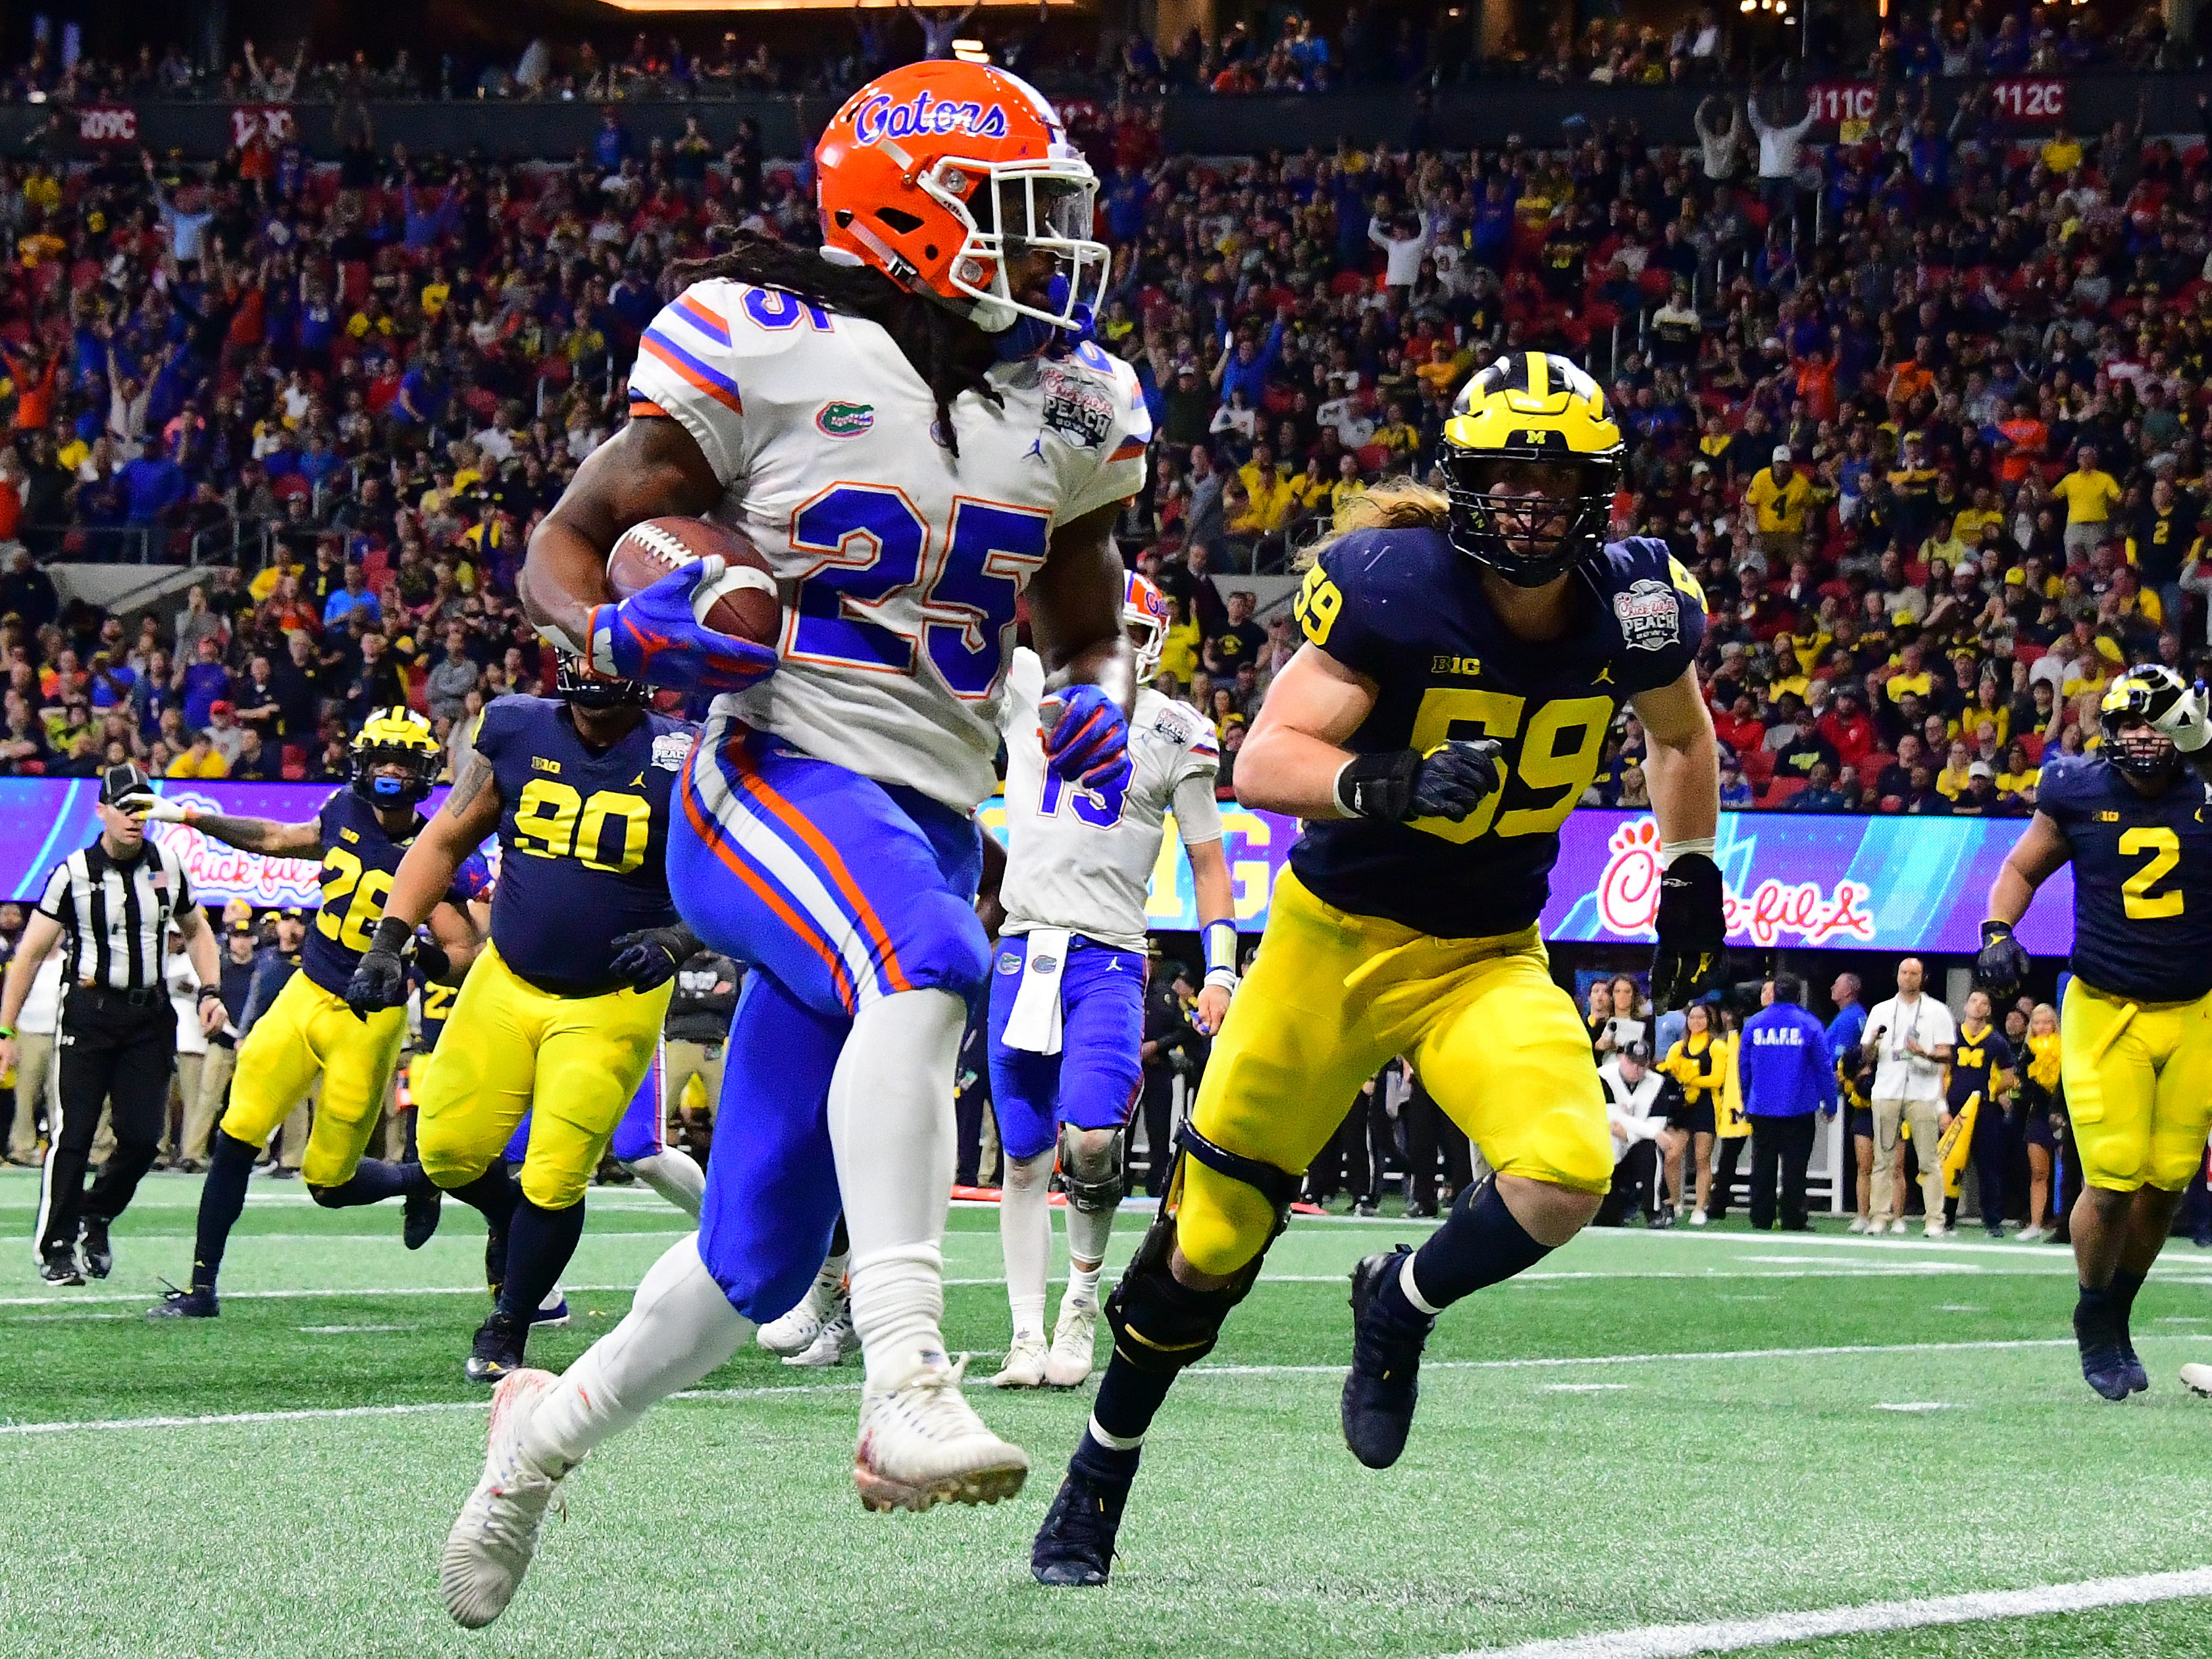 Florida running back Jordan Scarlett scores a third-quarter rushing touchdown against Michigan during the Peach Bowl on Saturday, Dec. 29, 2018, in Atlanta.